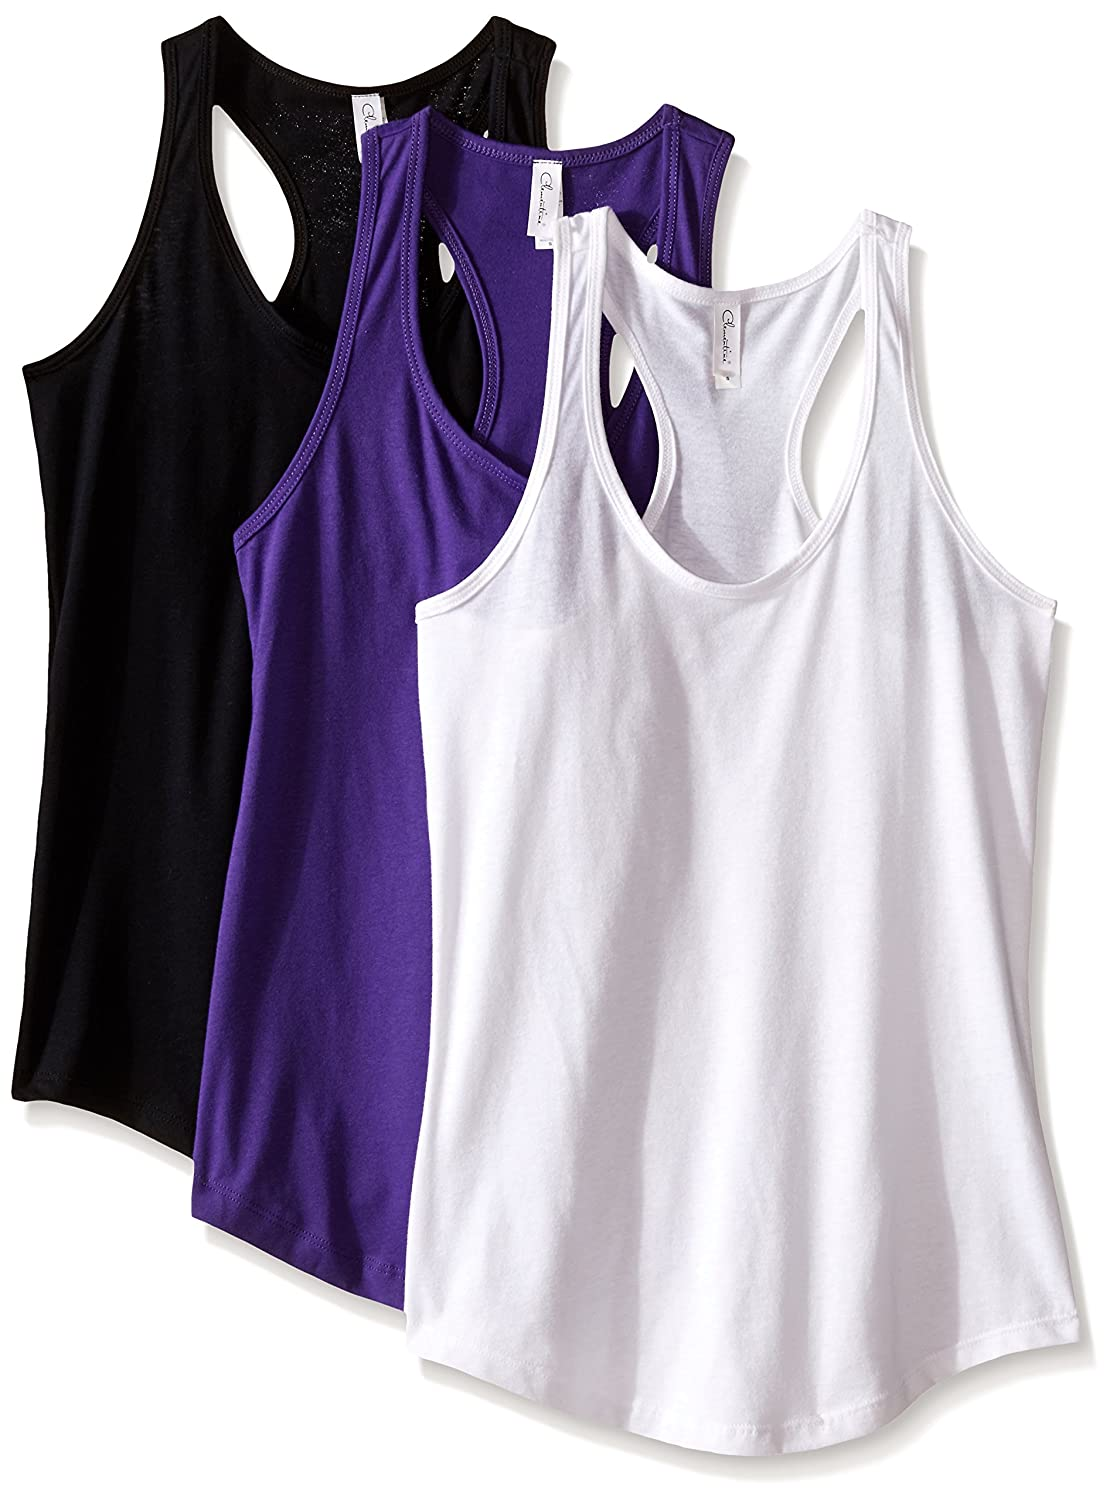 Clementine Women's Ideal Racerback Tank (Pack of 3) Clementine Womens Child Code 3-CLM1533